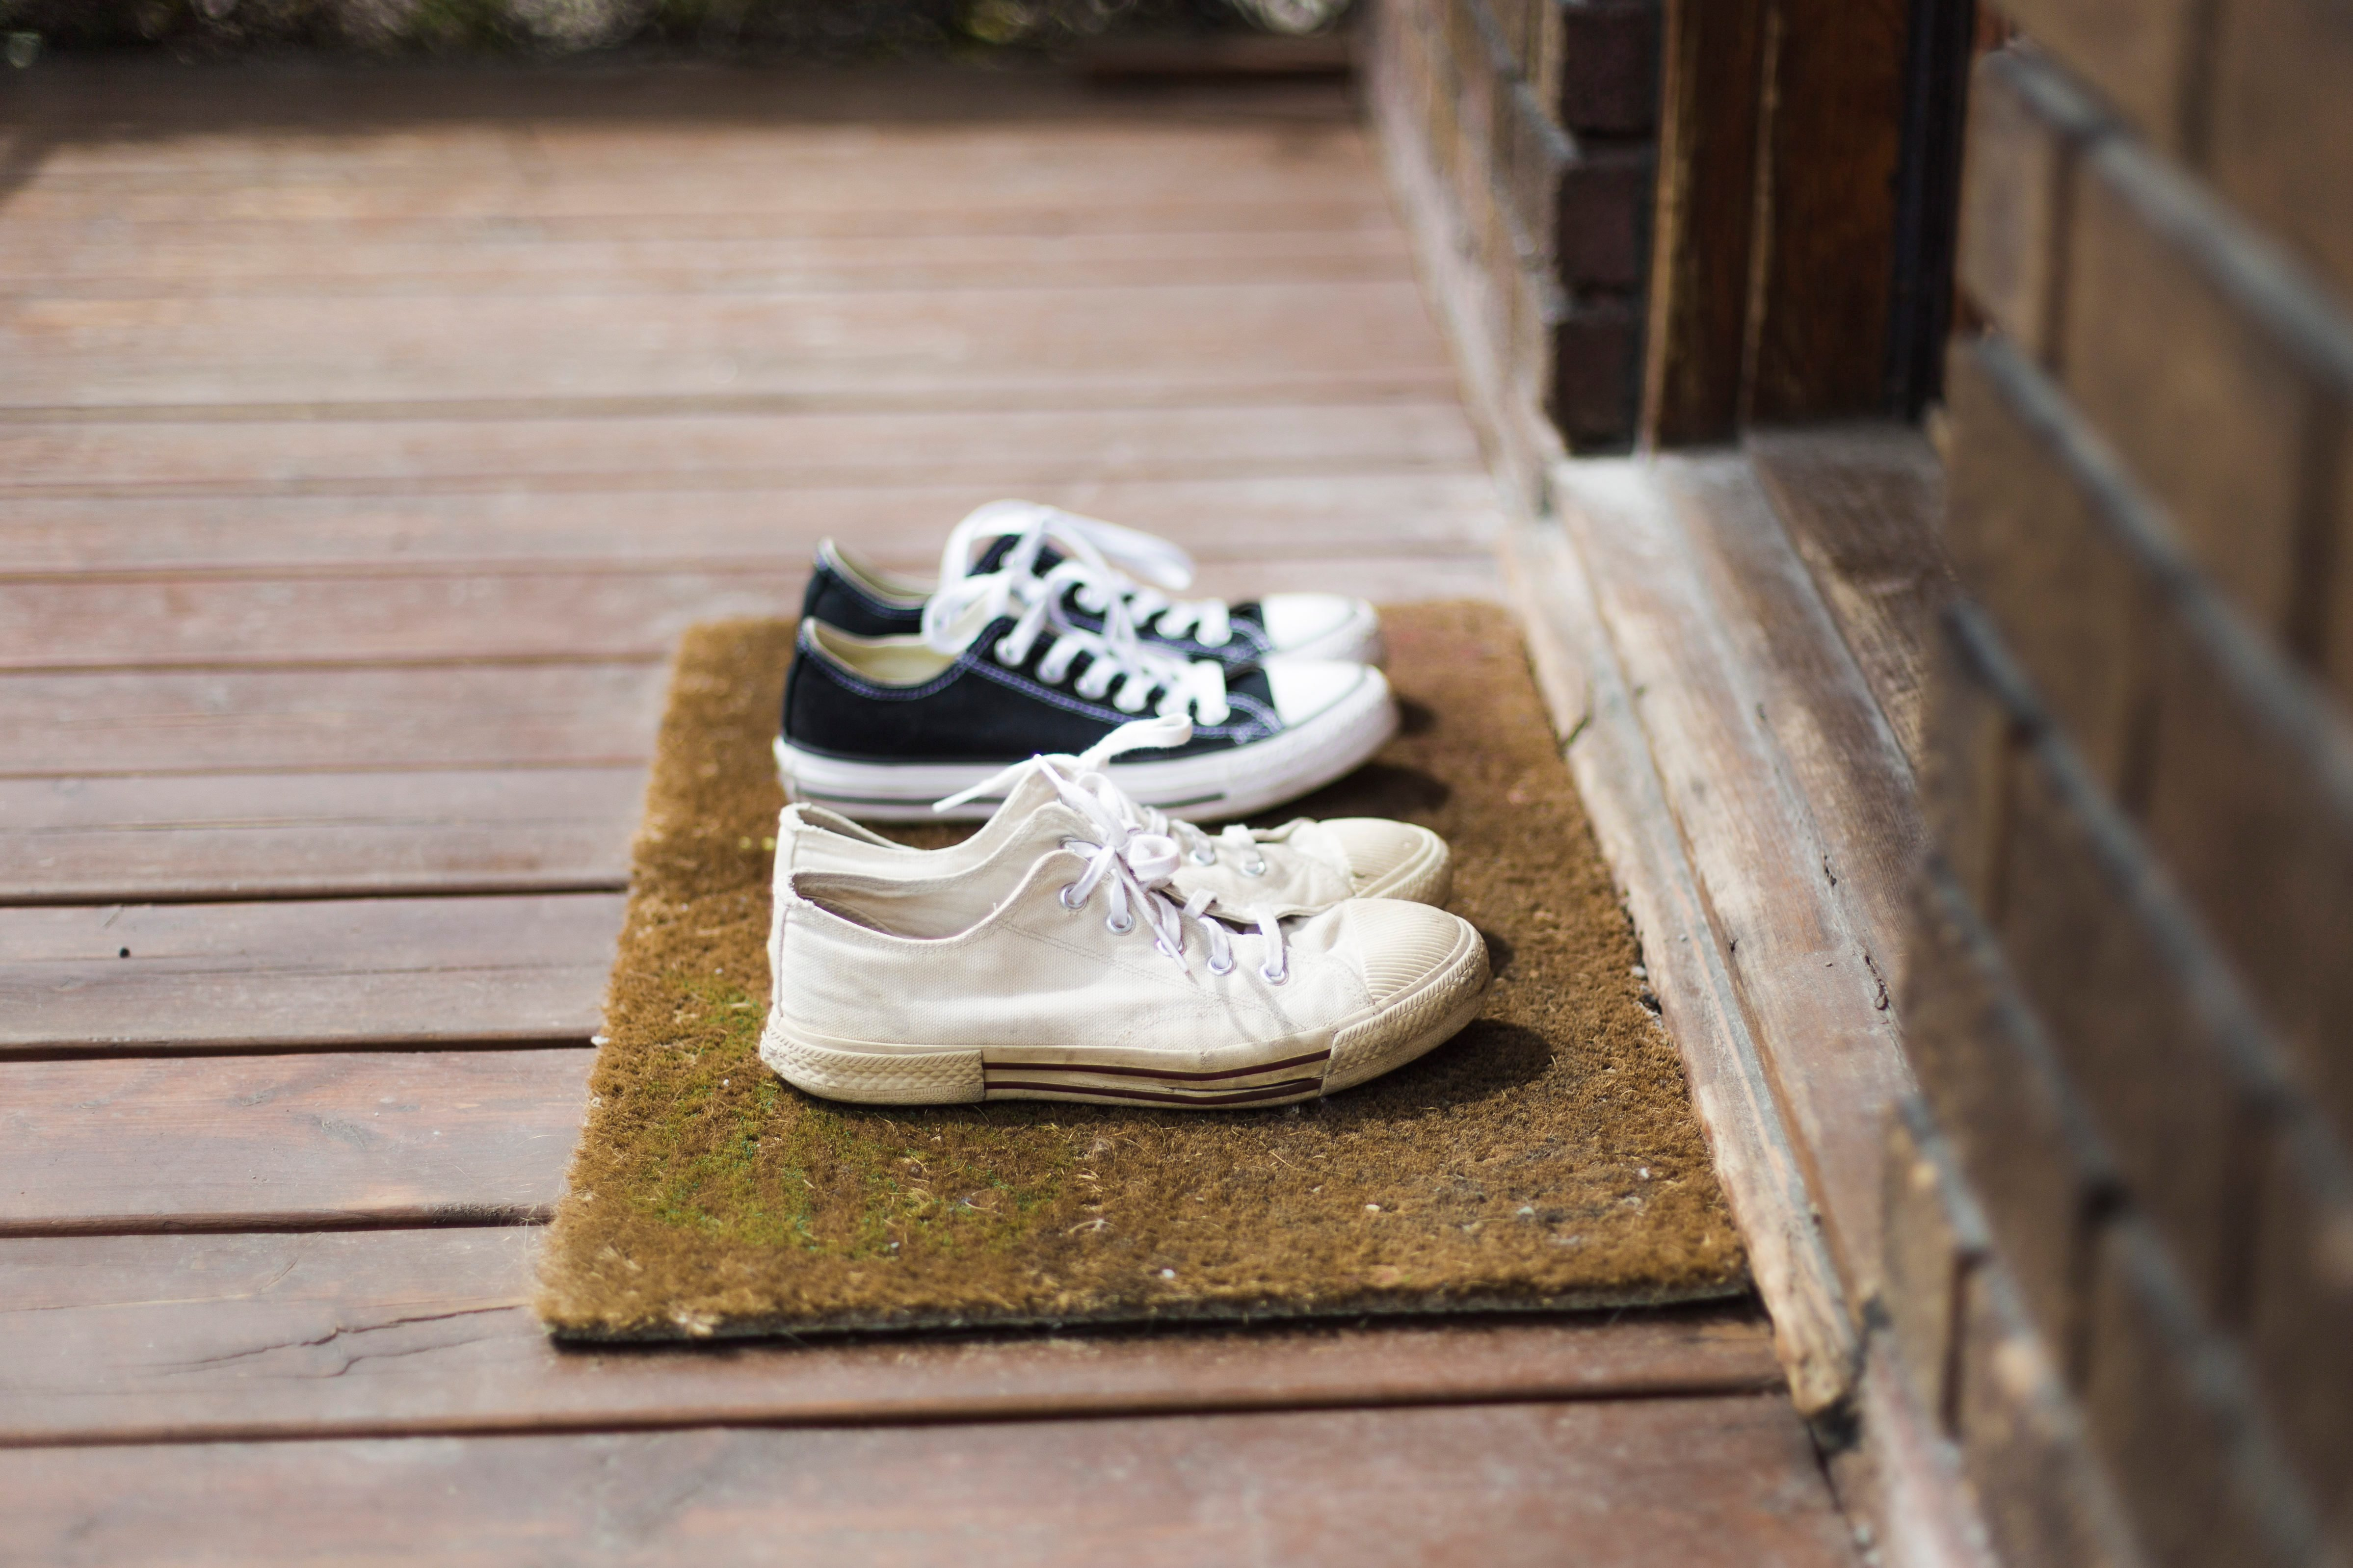 Home Moments - Two pair of black and white sneakers shoes on a porch